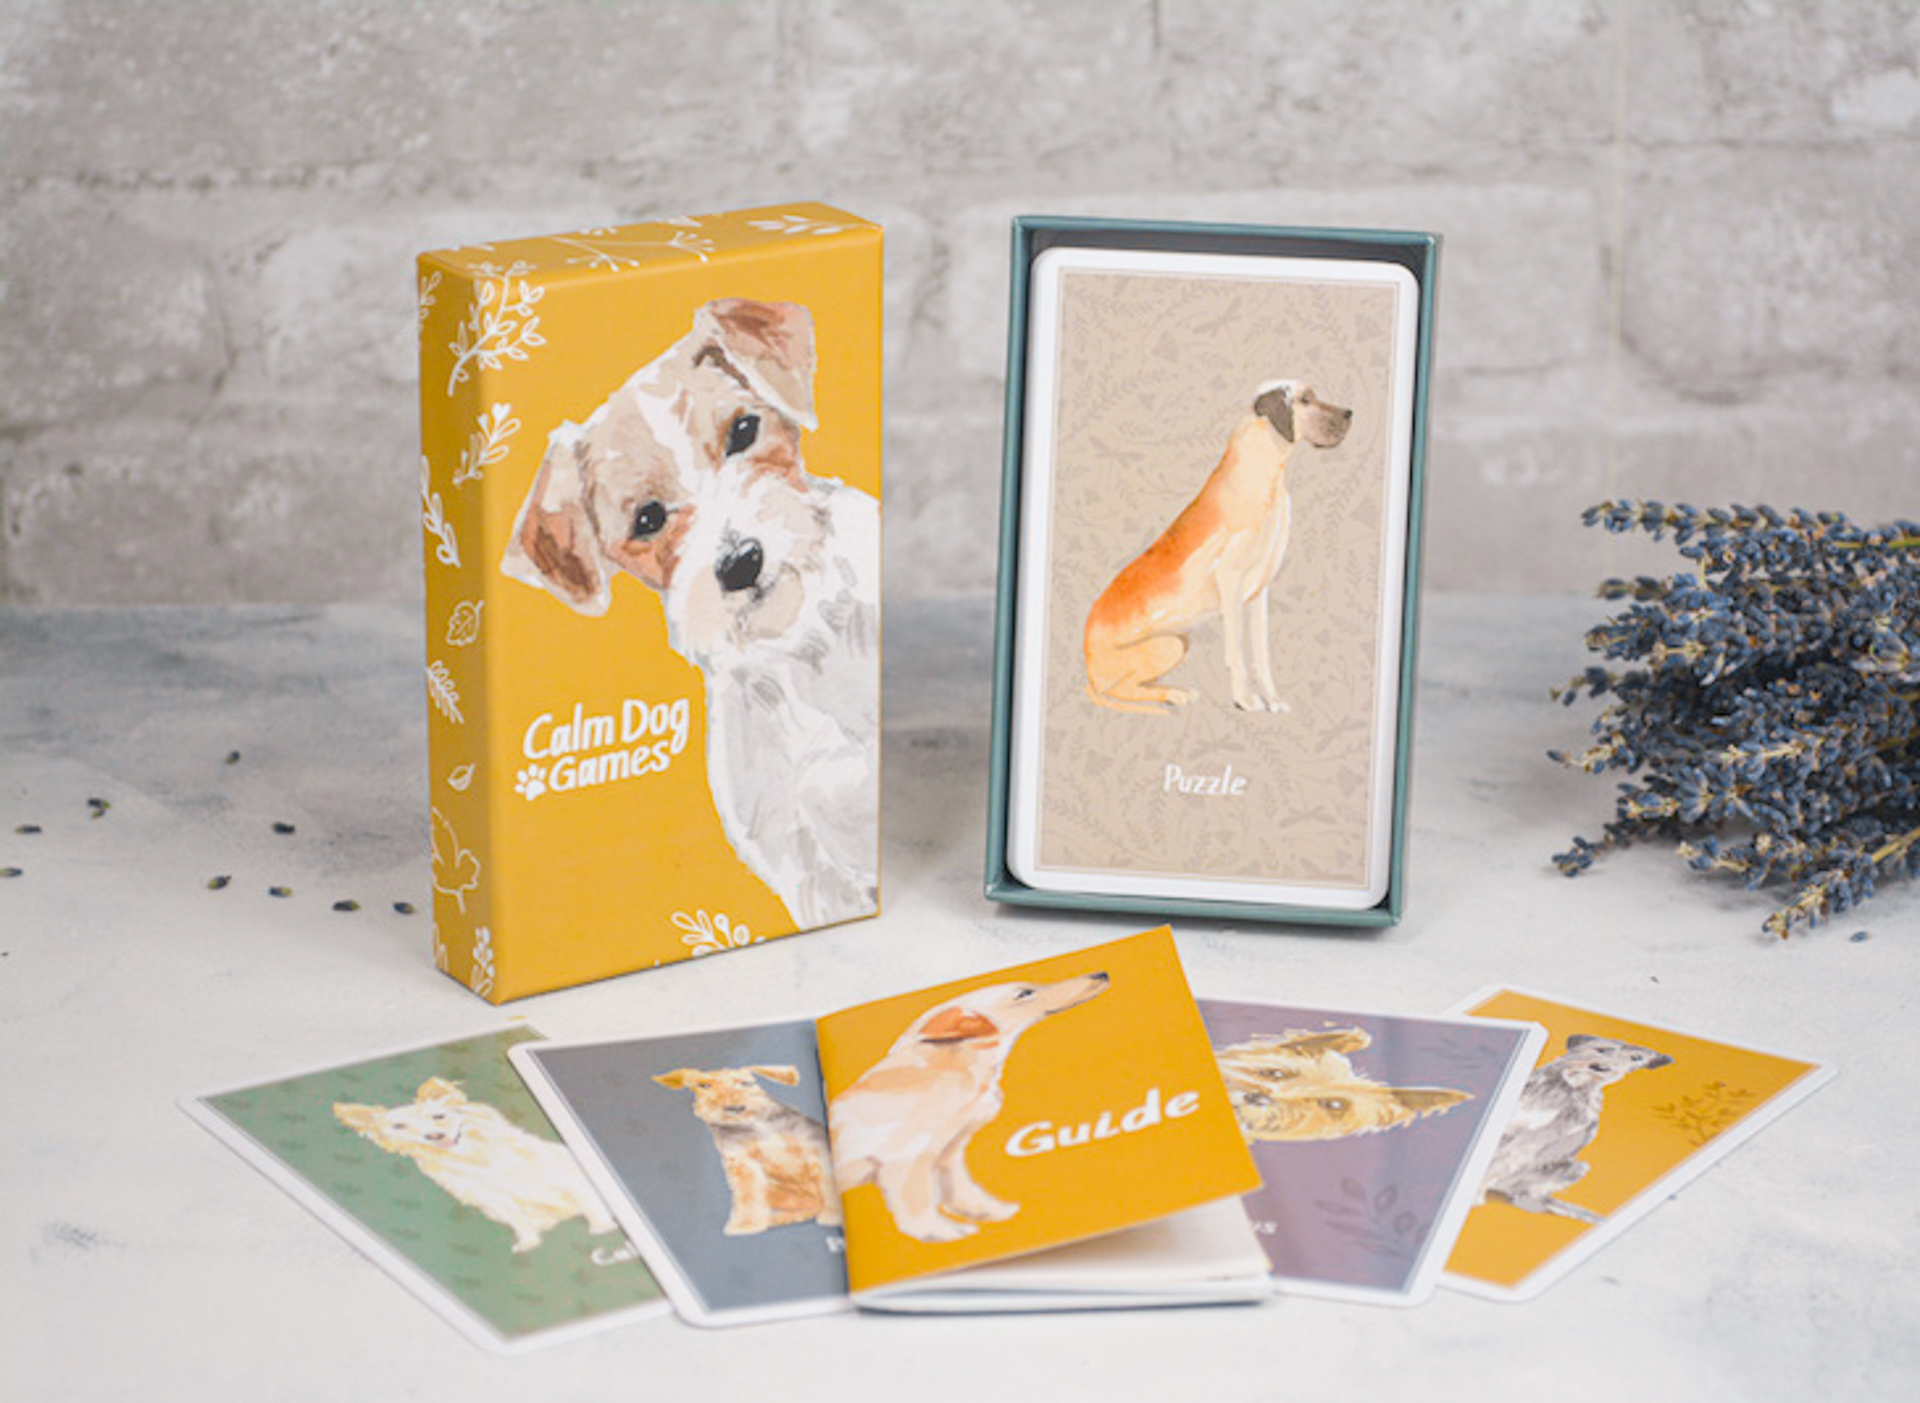 Calm dog games, brain training games for dogs, brain training for dogs, mental stimulation for dogs